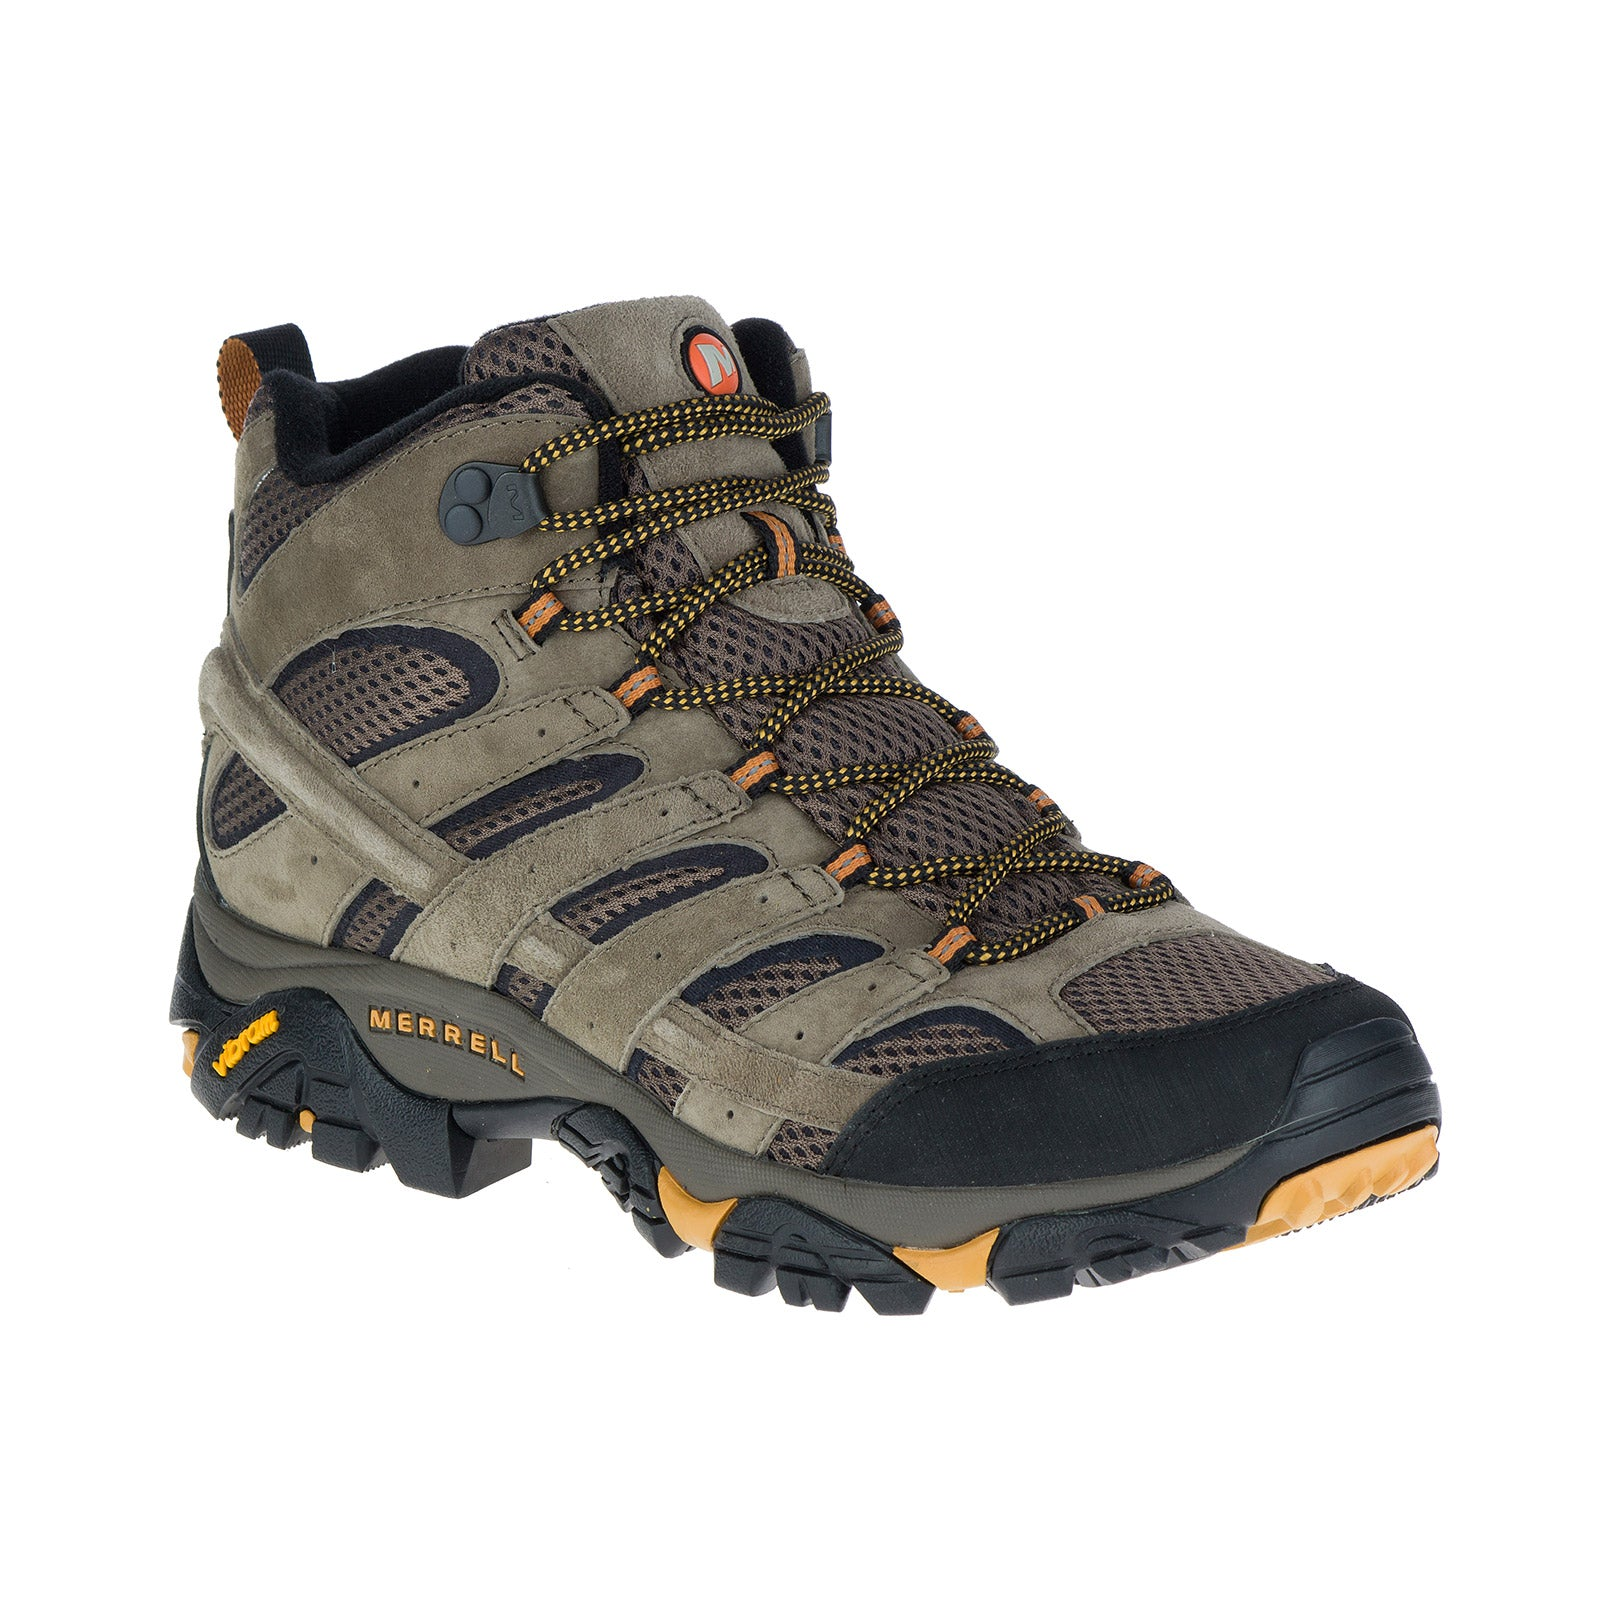 merrell moab 2 mid ventilator hiking boot mens three quarter view in colors light and dark brown